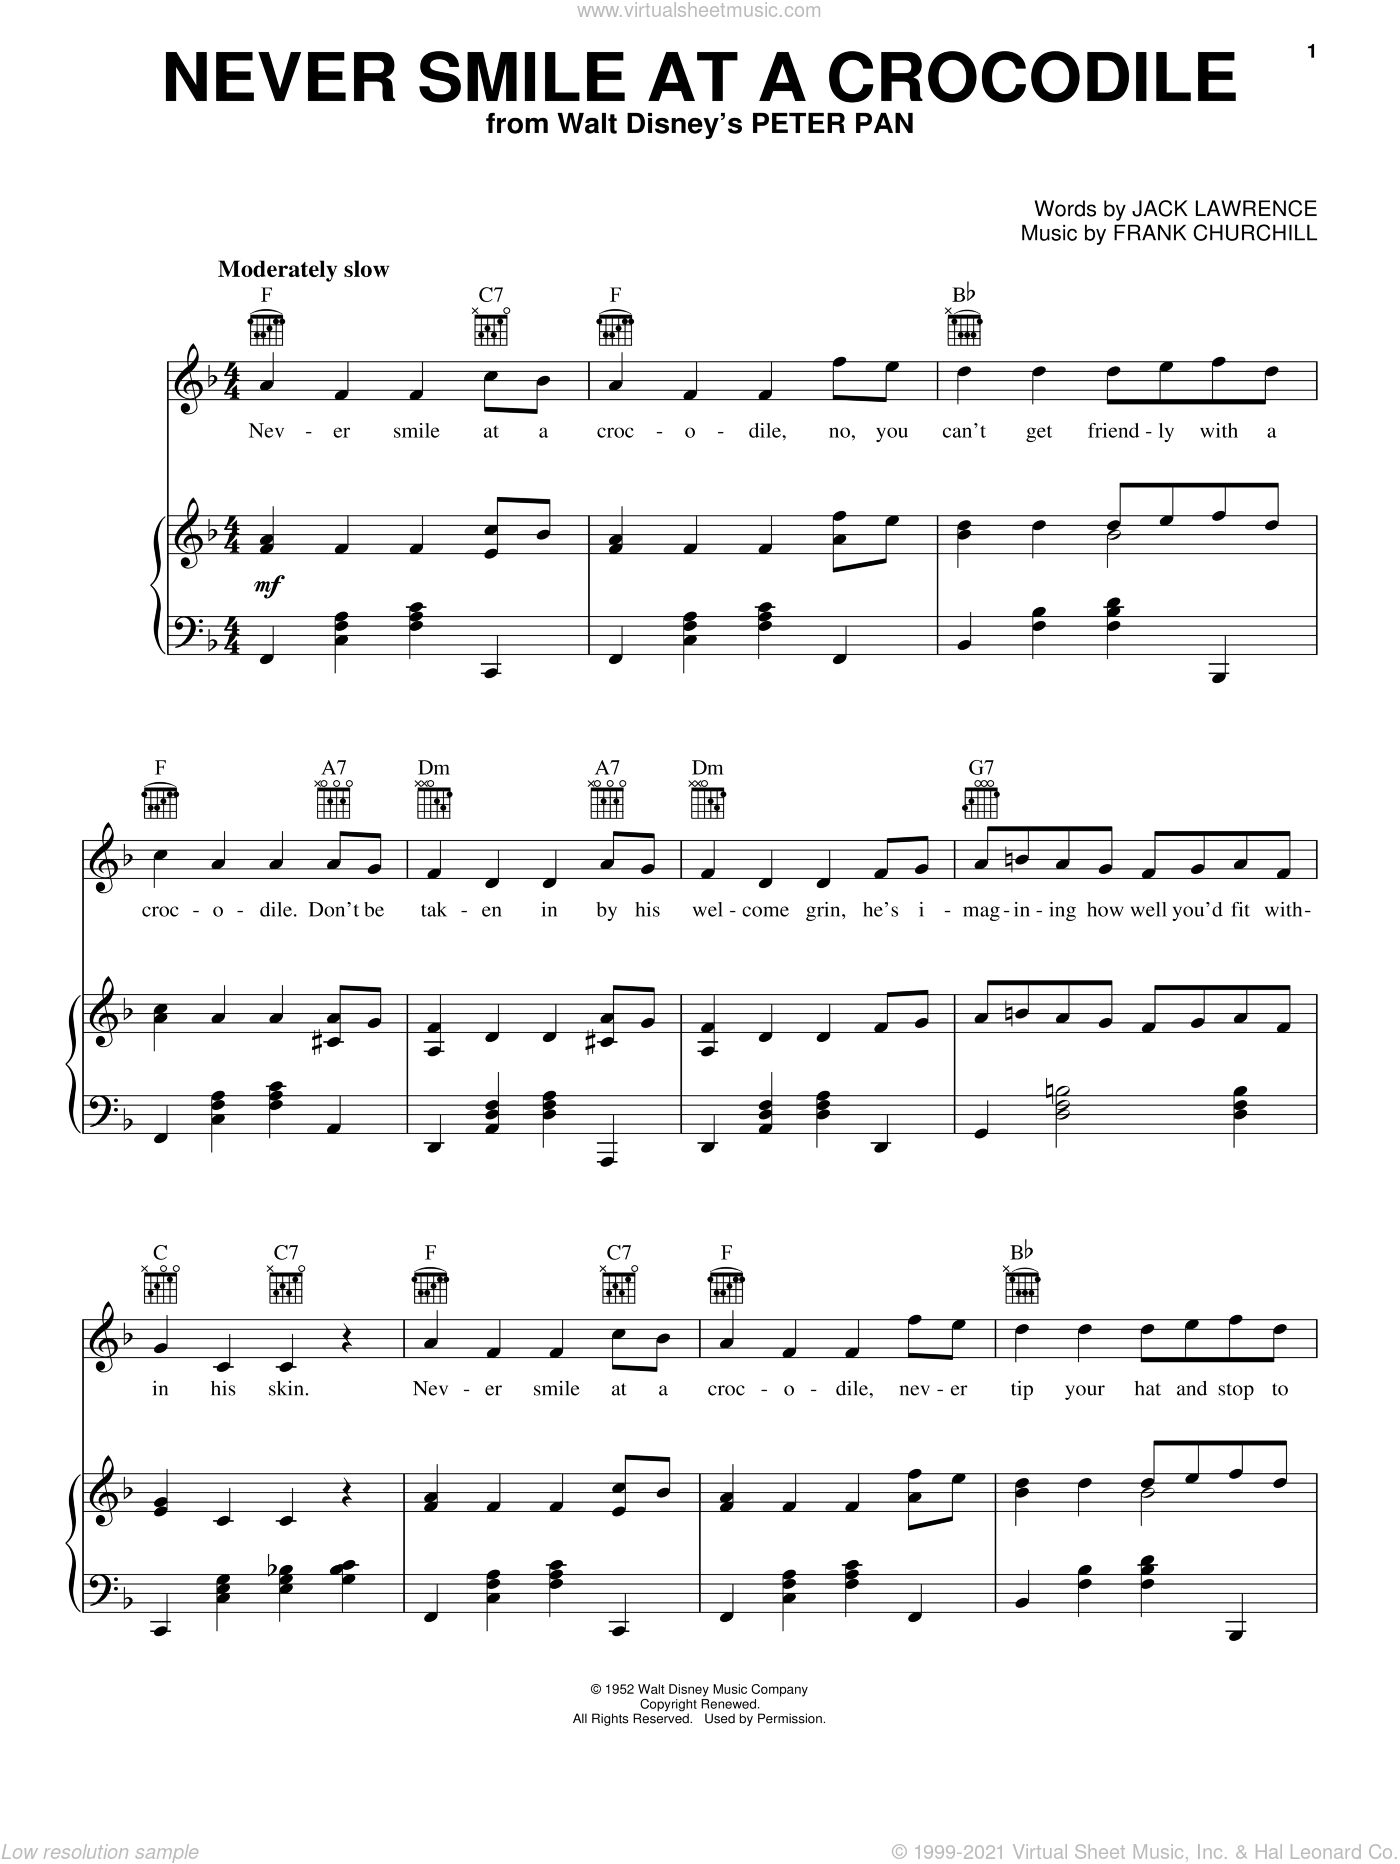 Never Smile At A Crocodile sheet music for voice, piano or guitar by Jack Lawrence and Frank Churchill, intermediate skill level